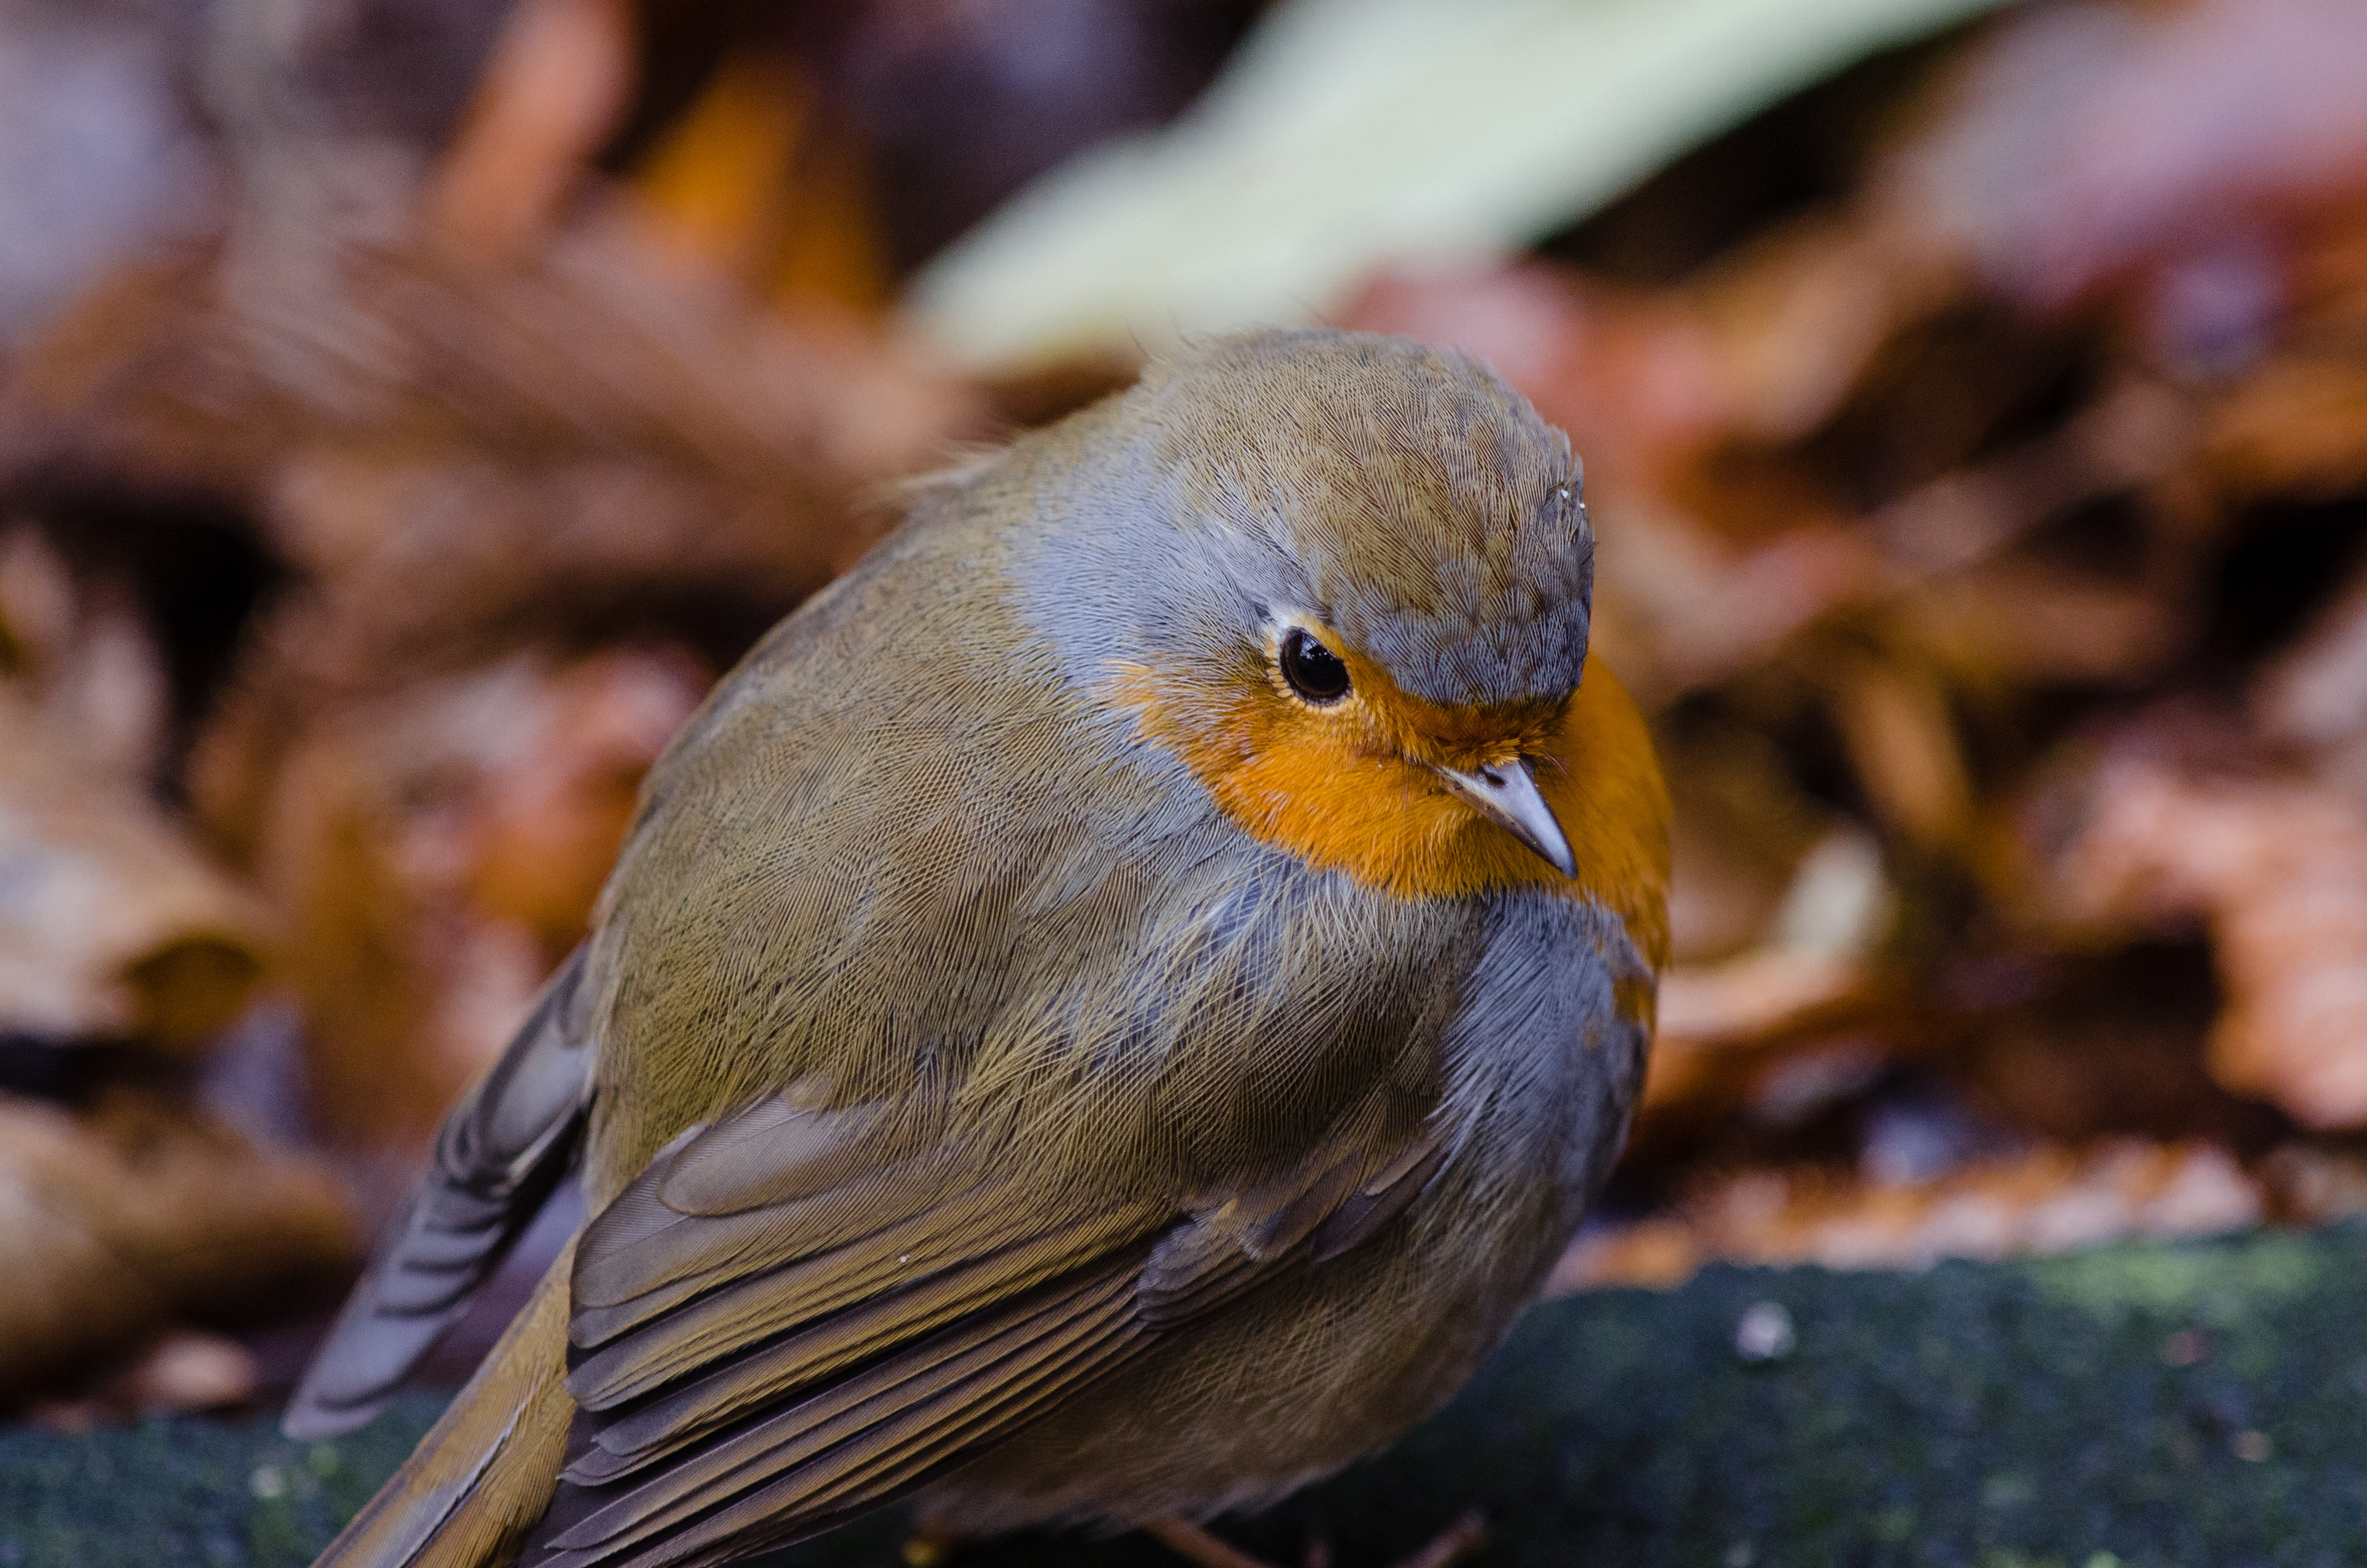 Shallow Focus Lens Shot of Gray Bird, Outdoors, Wood, Wings, Wildlife, HQ Photo